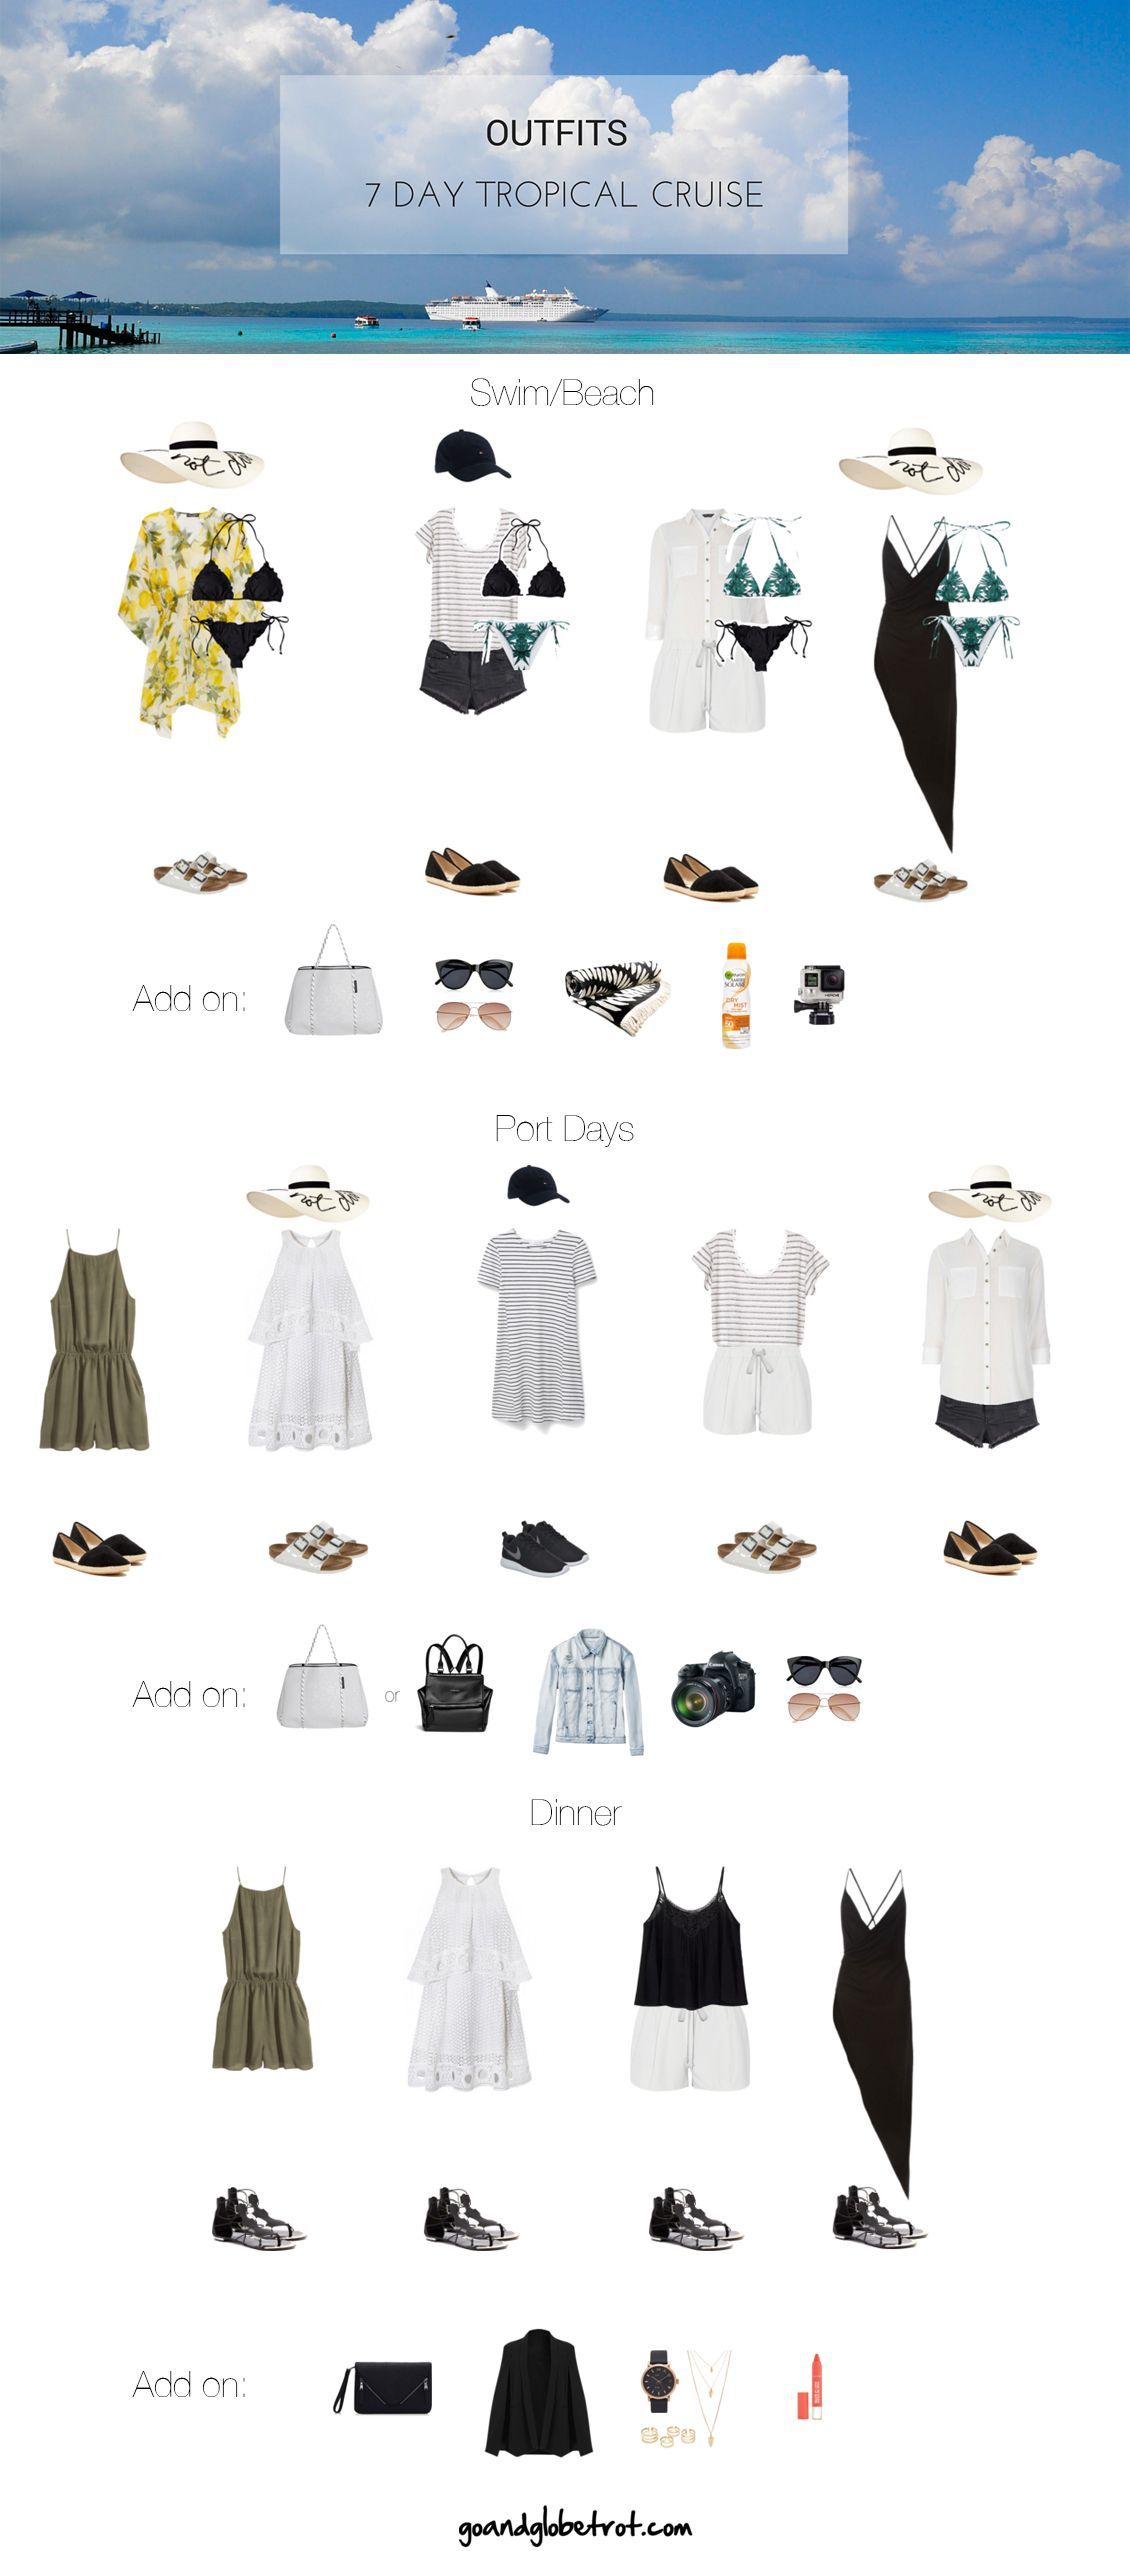 12 mexico vacation outfits ideas for women #vacationoutfits